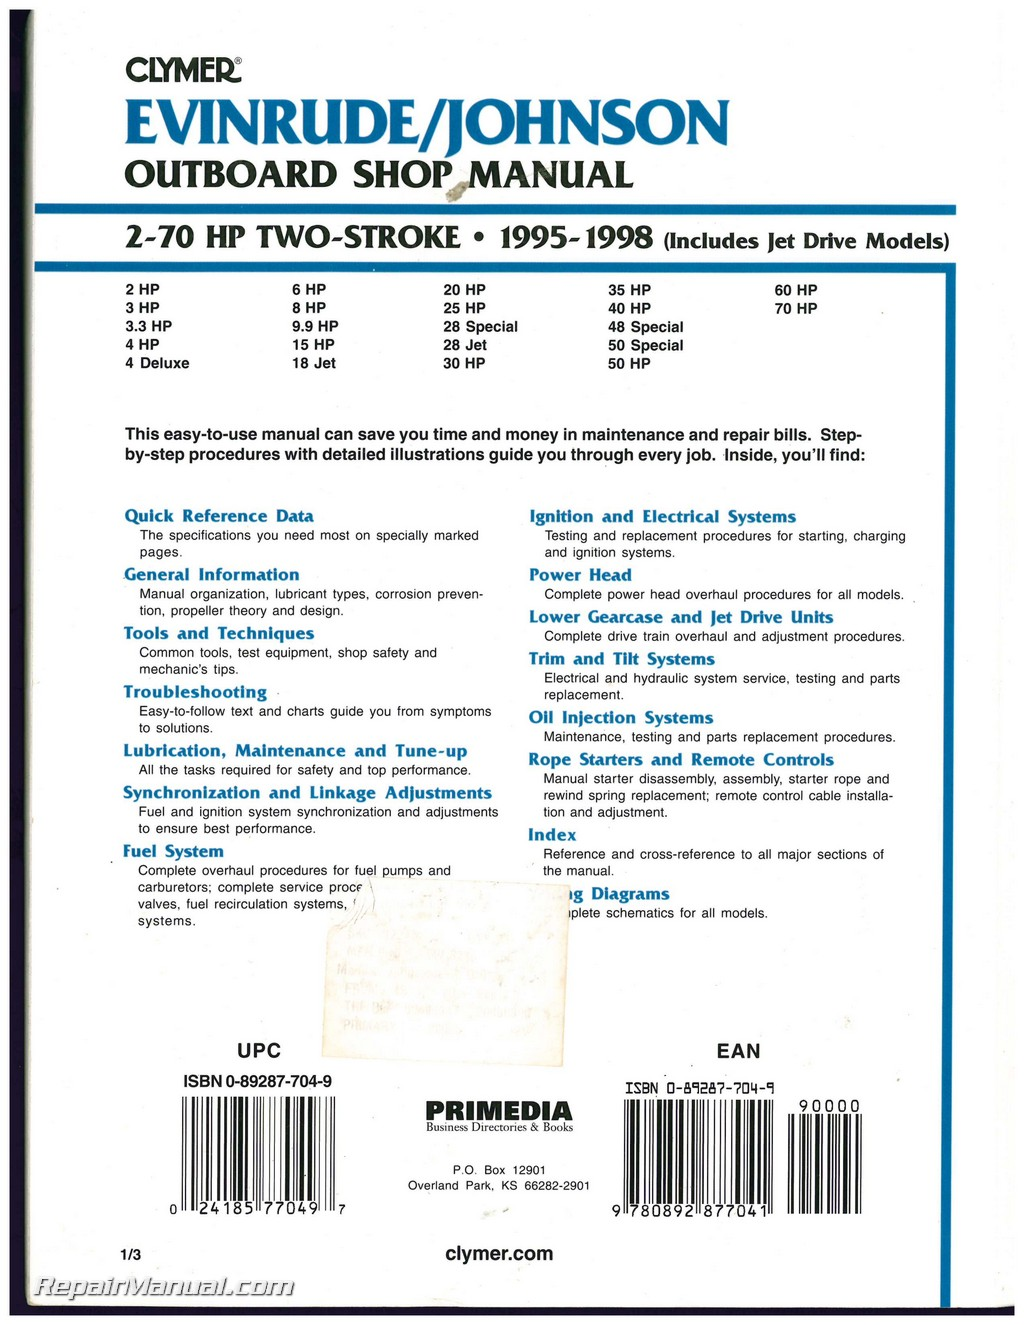 Evinrude Johnson 2-70 HP 2-Stroke Outboard Boat Shop Manual 1995 1996 1997  1998